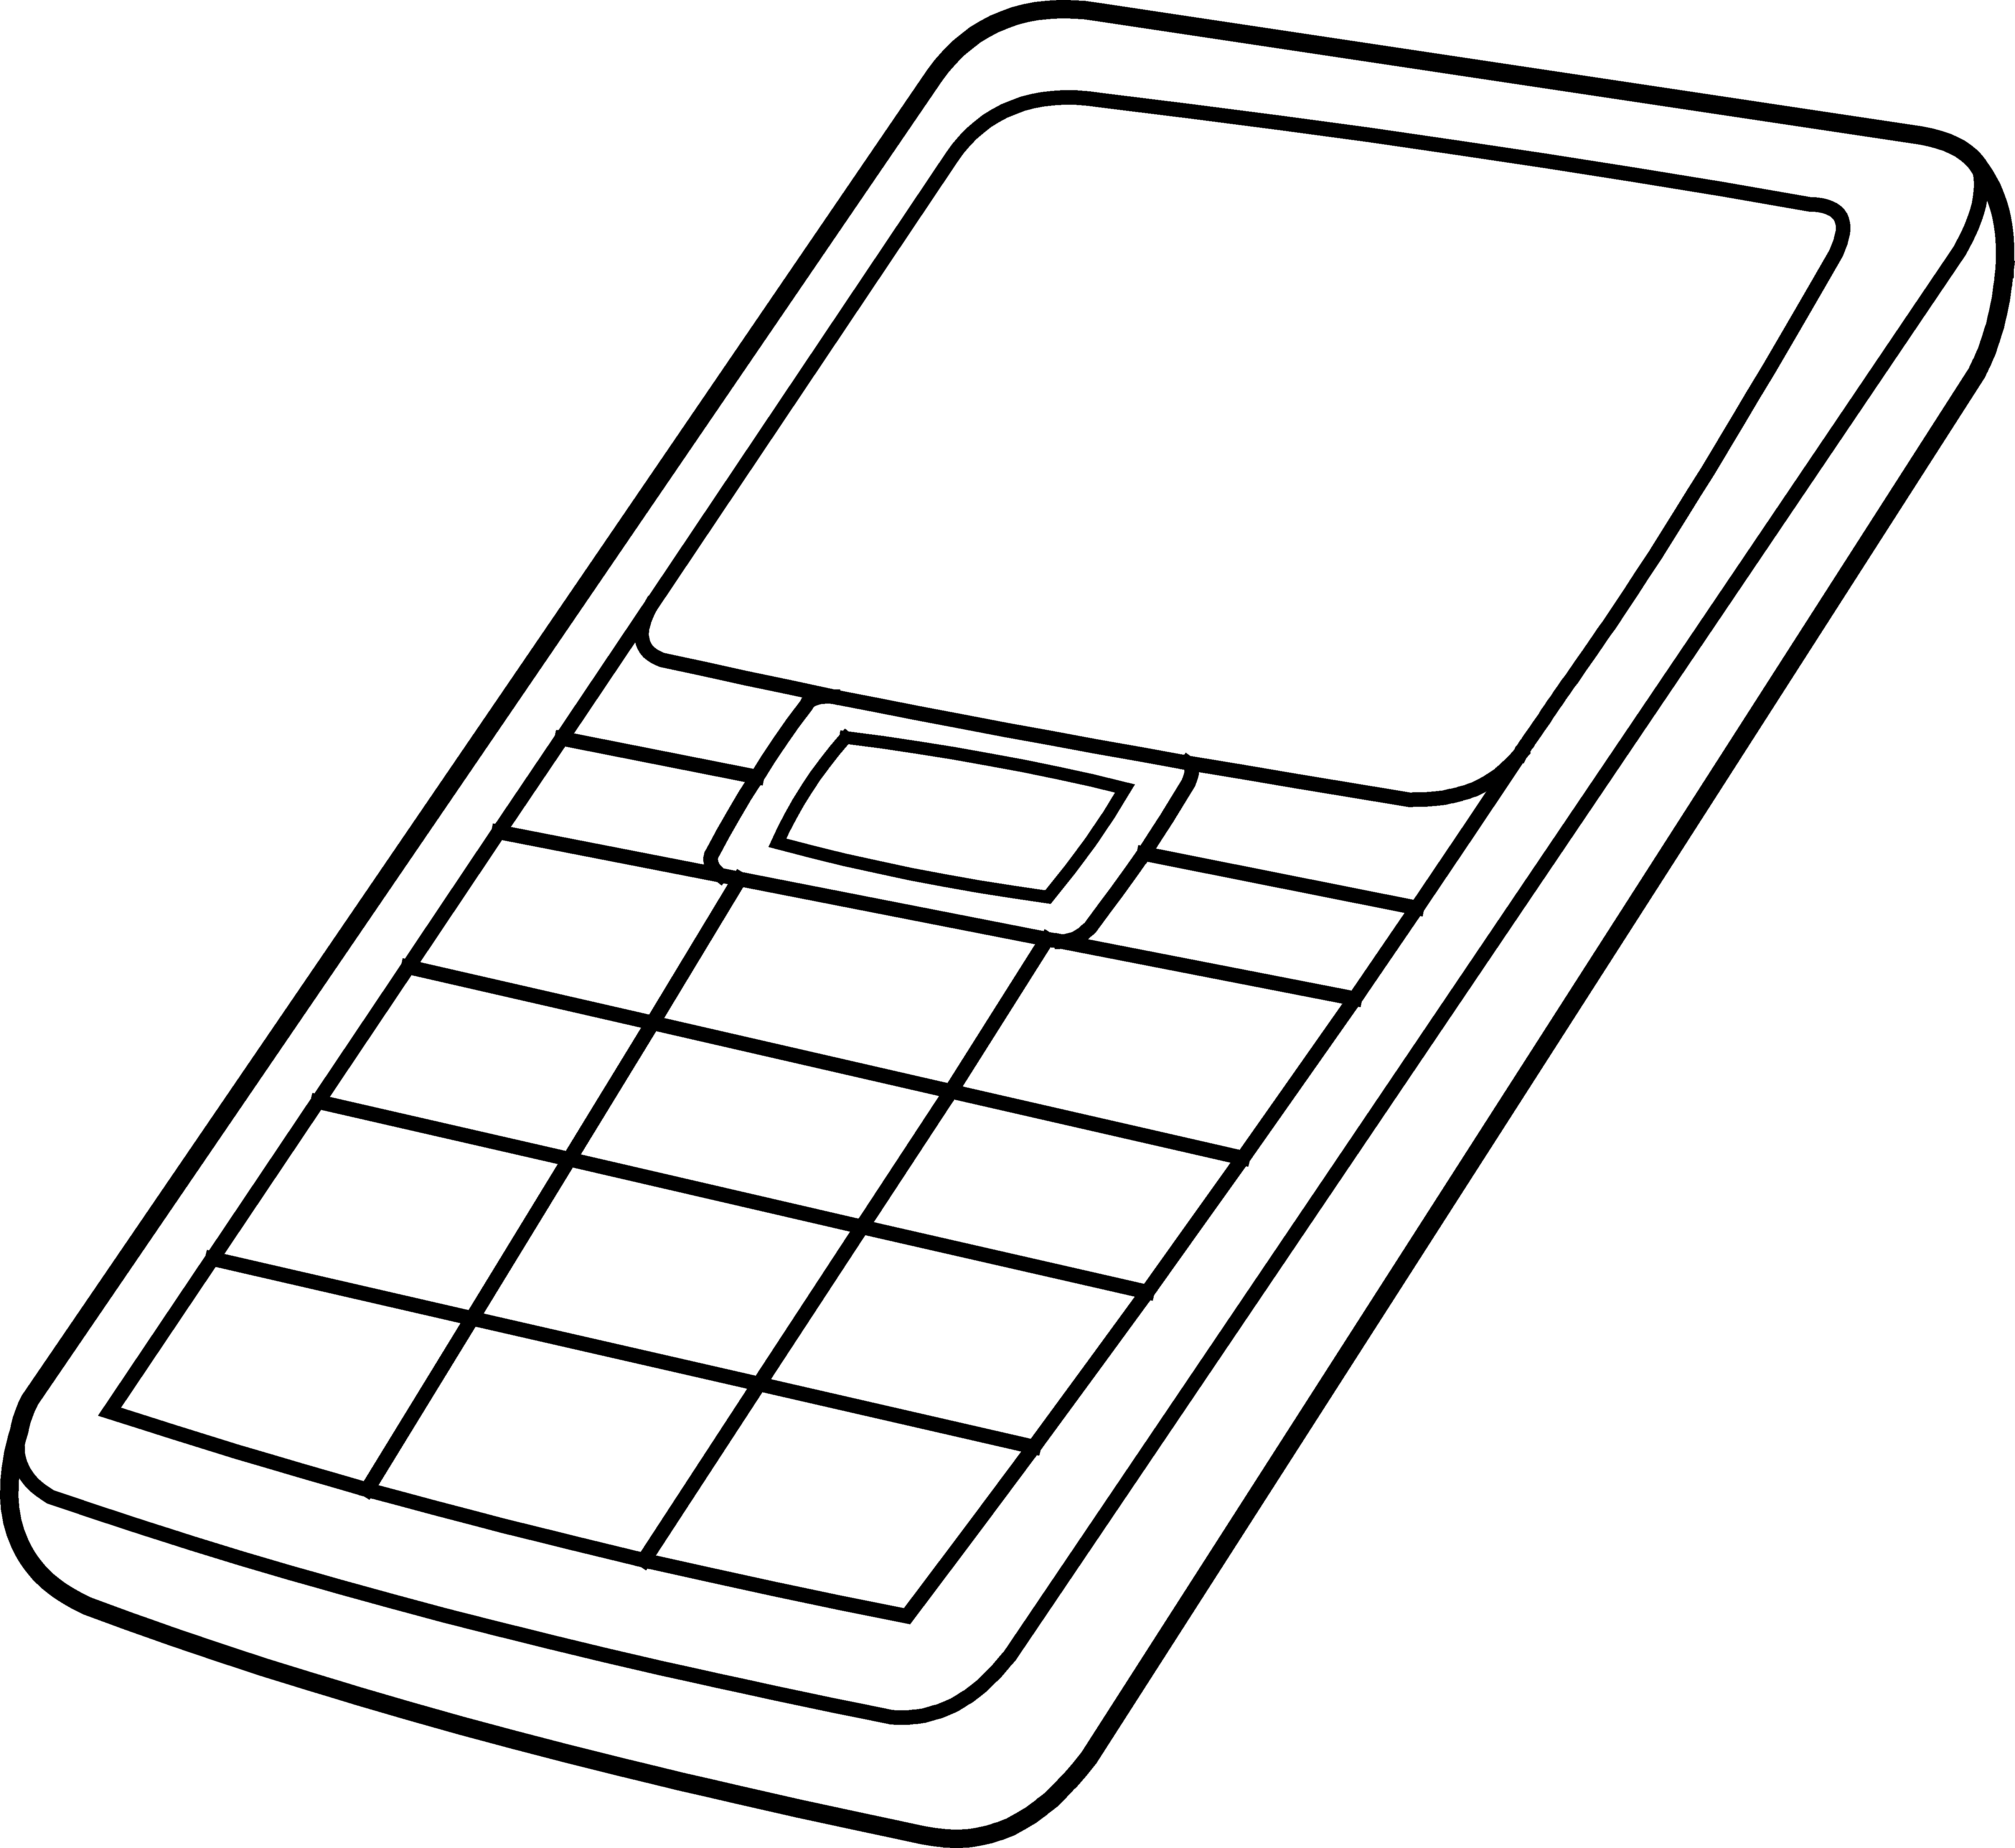 Mobile Phone Clipart.